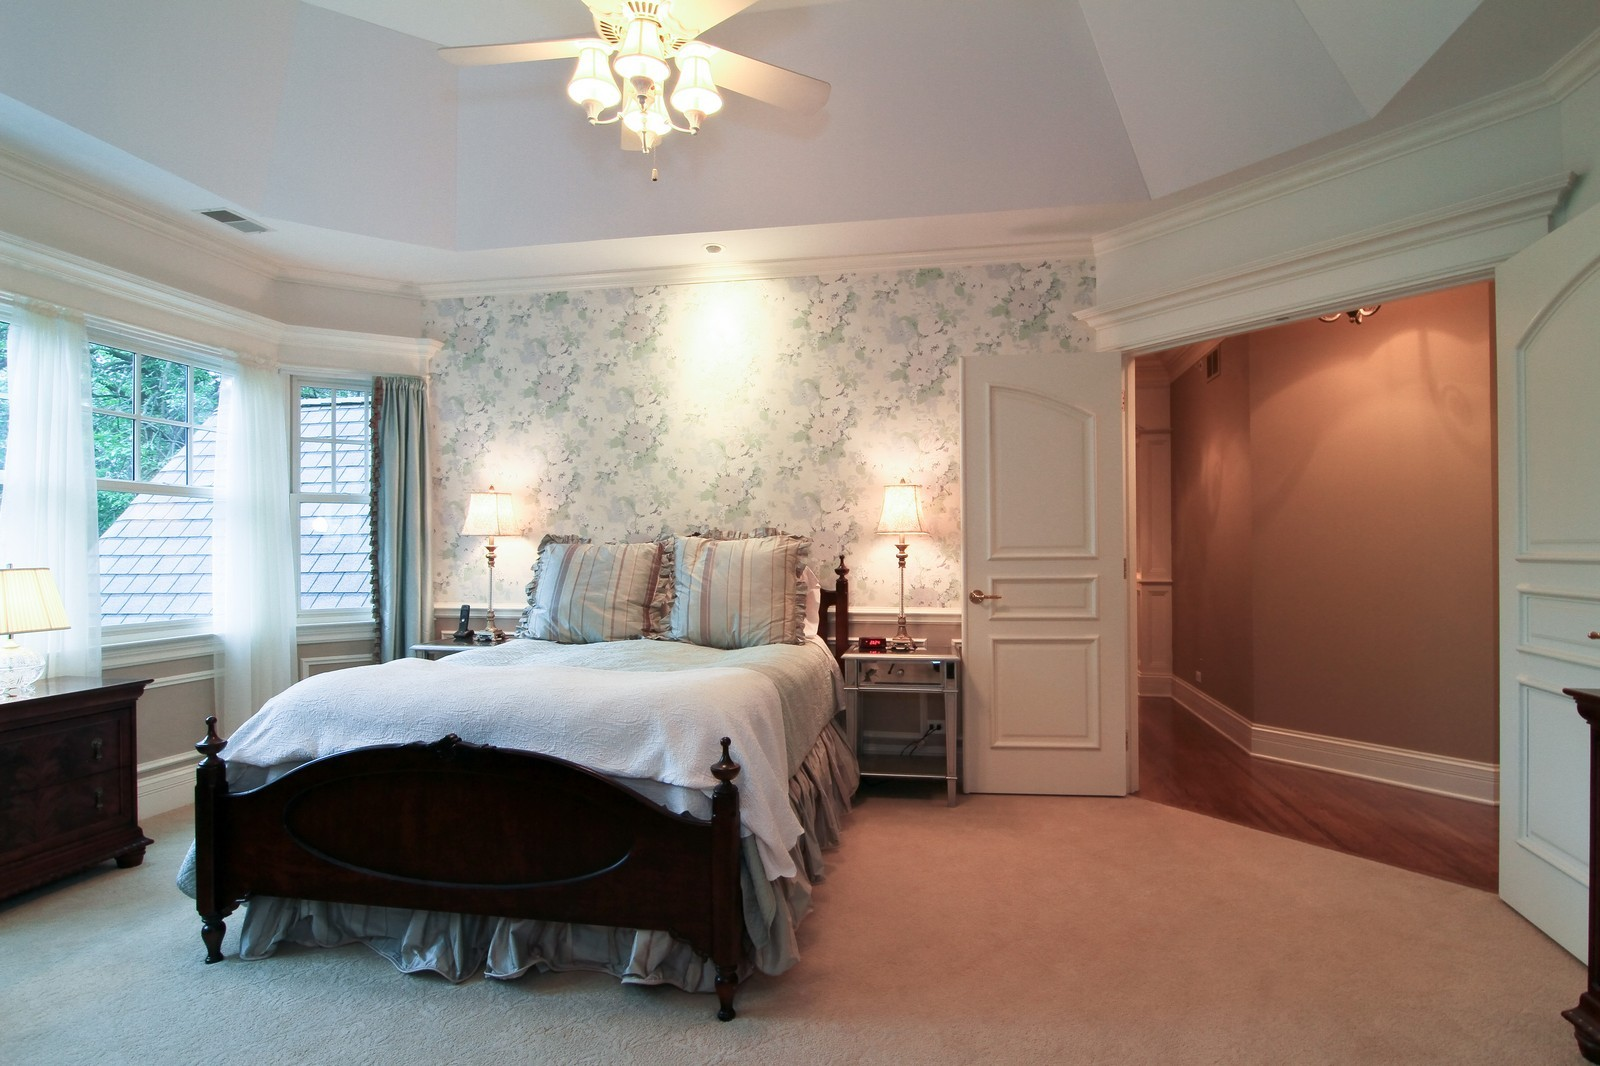 Real Estate Photography - 127 Tuttle, Claredon Hills, IL, 60514 - Master Bedroom